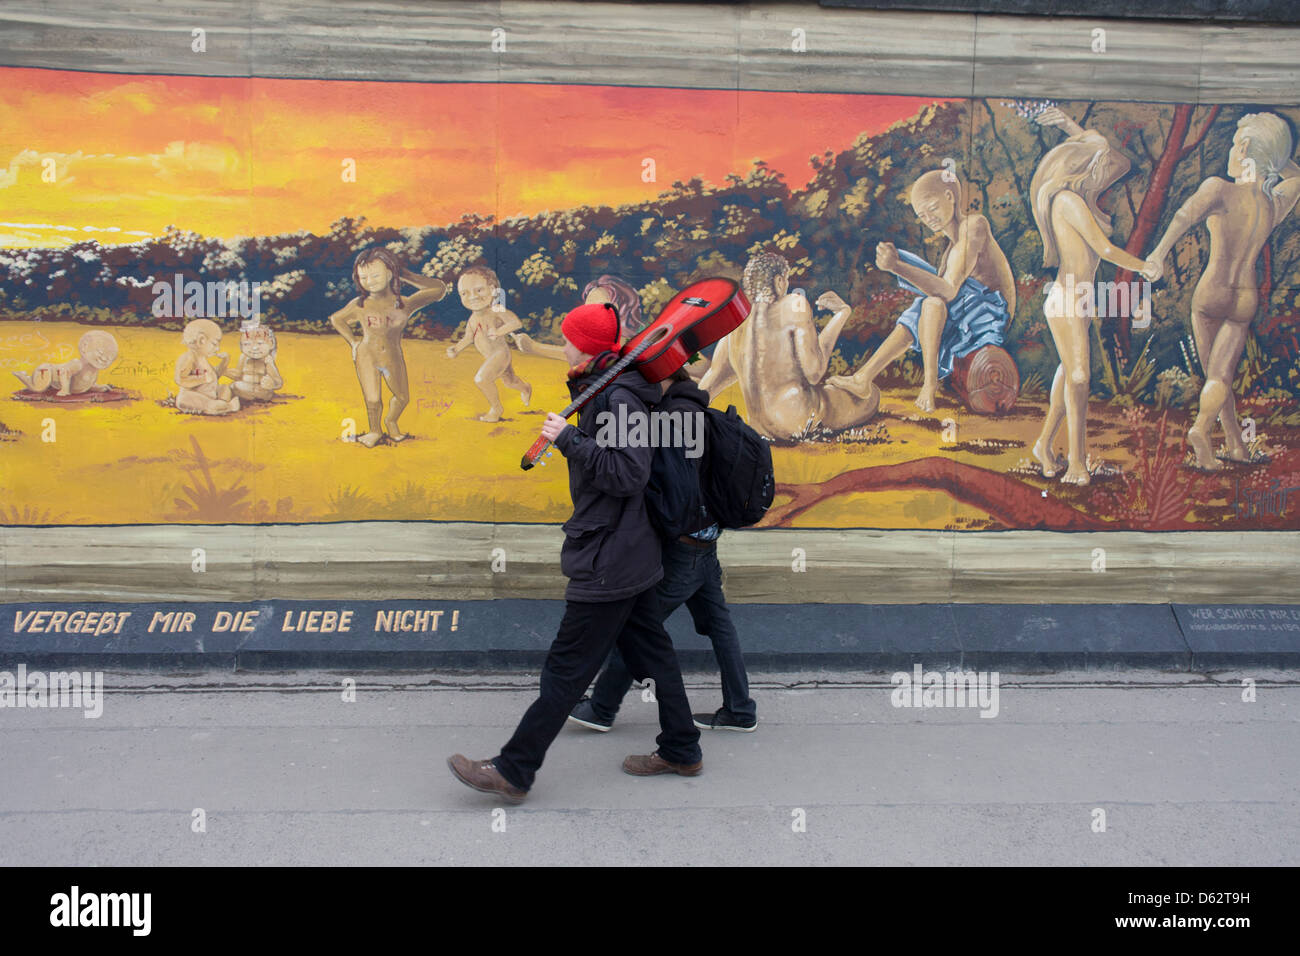 Visitors enjoy the art on the old Berlin Wall at the East